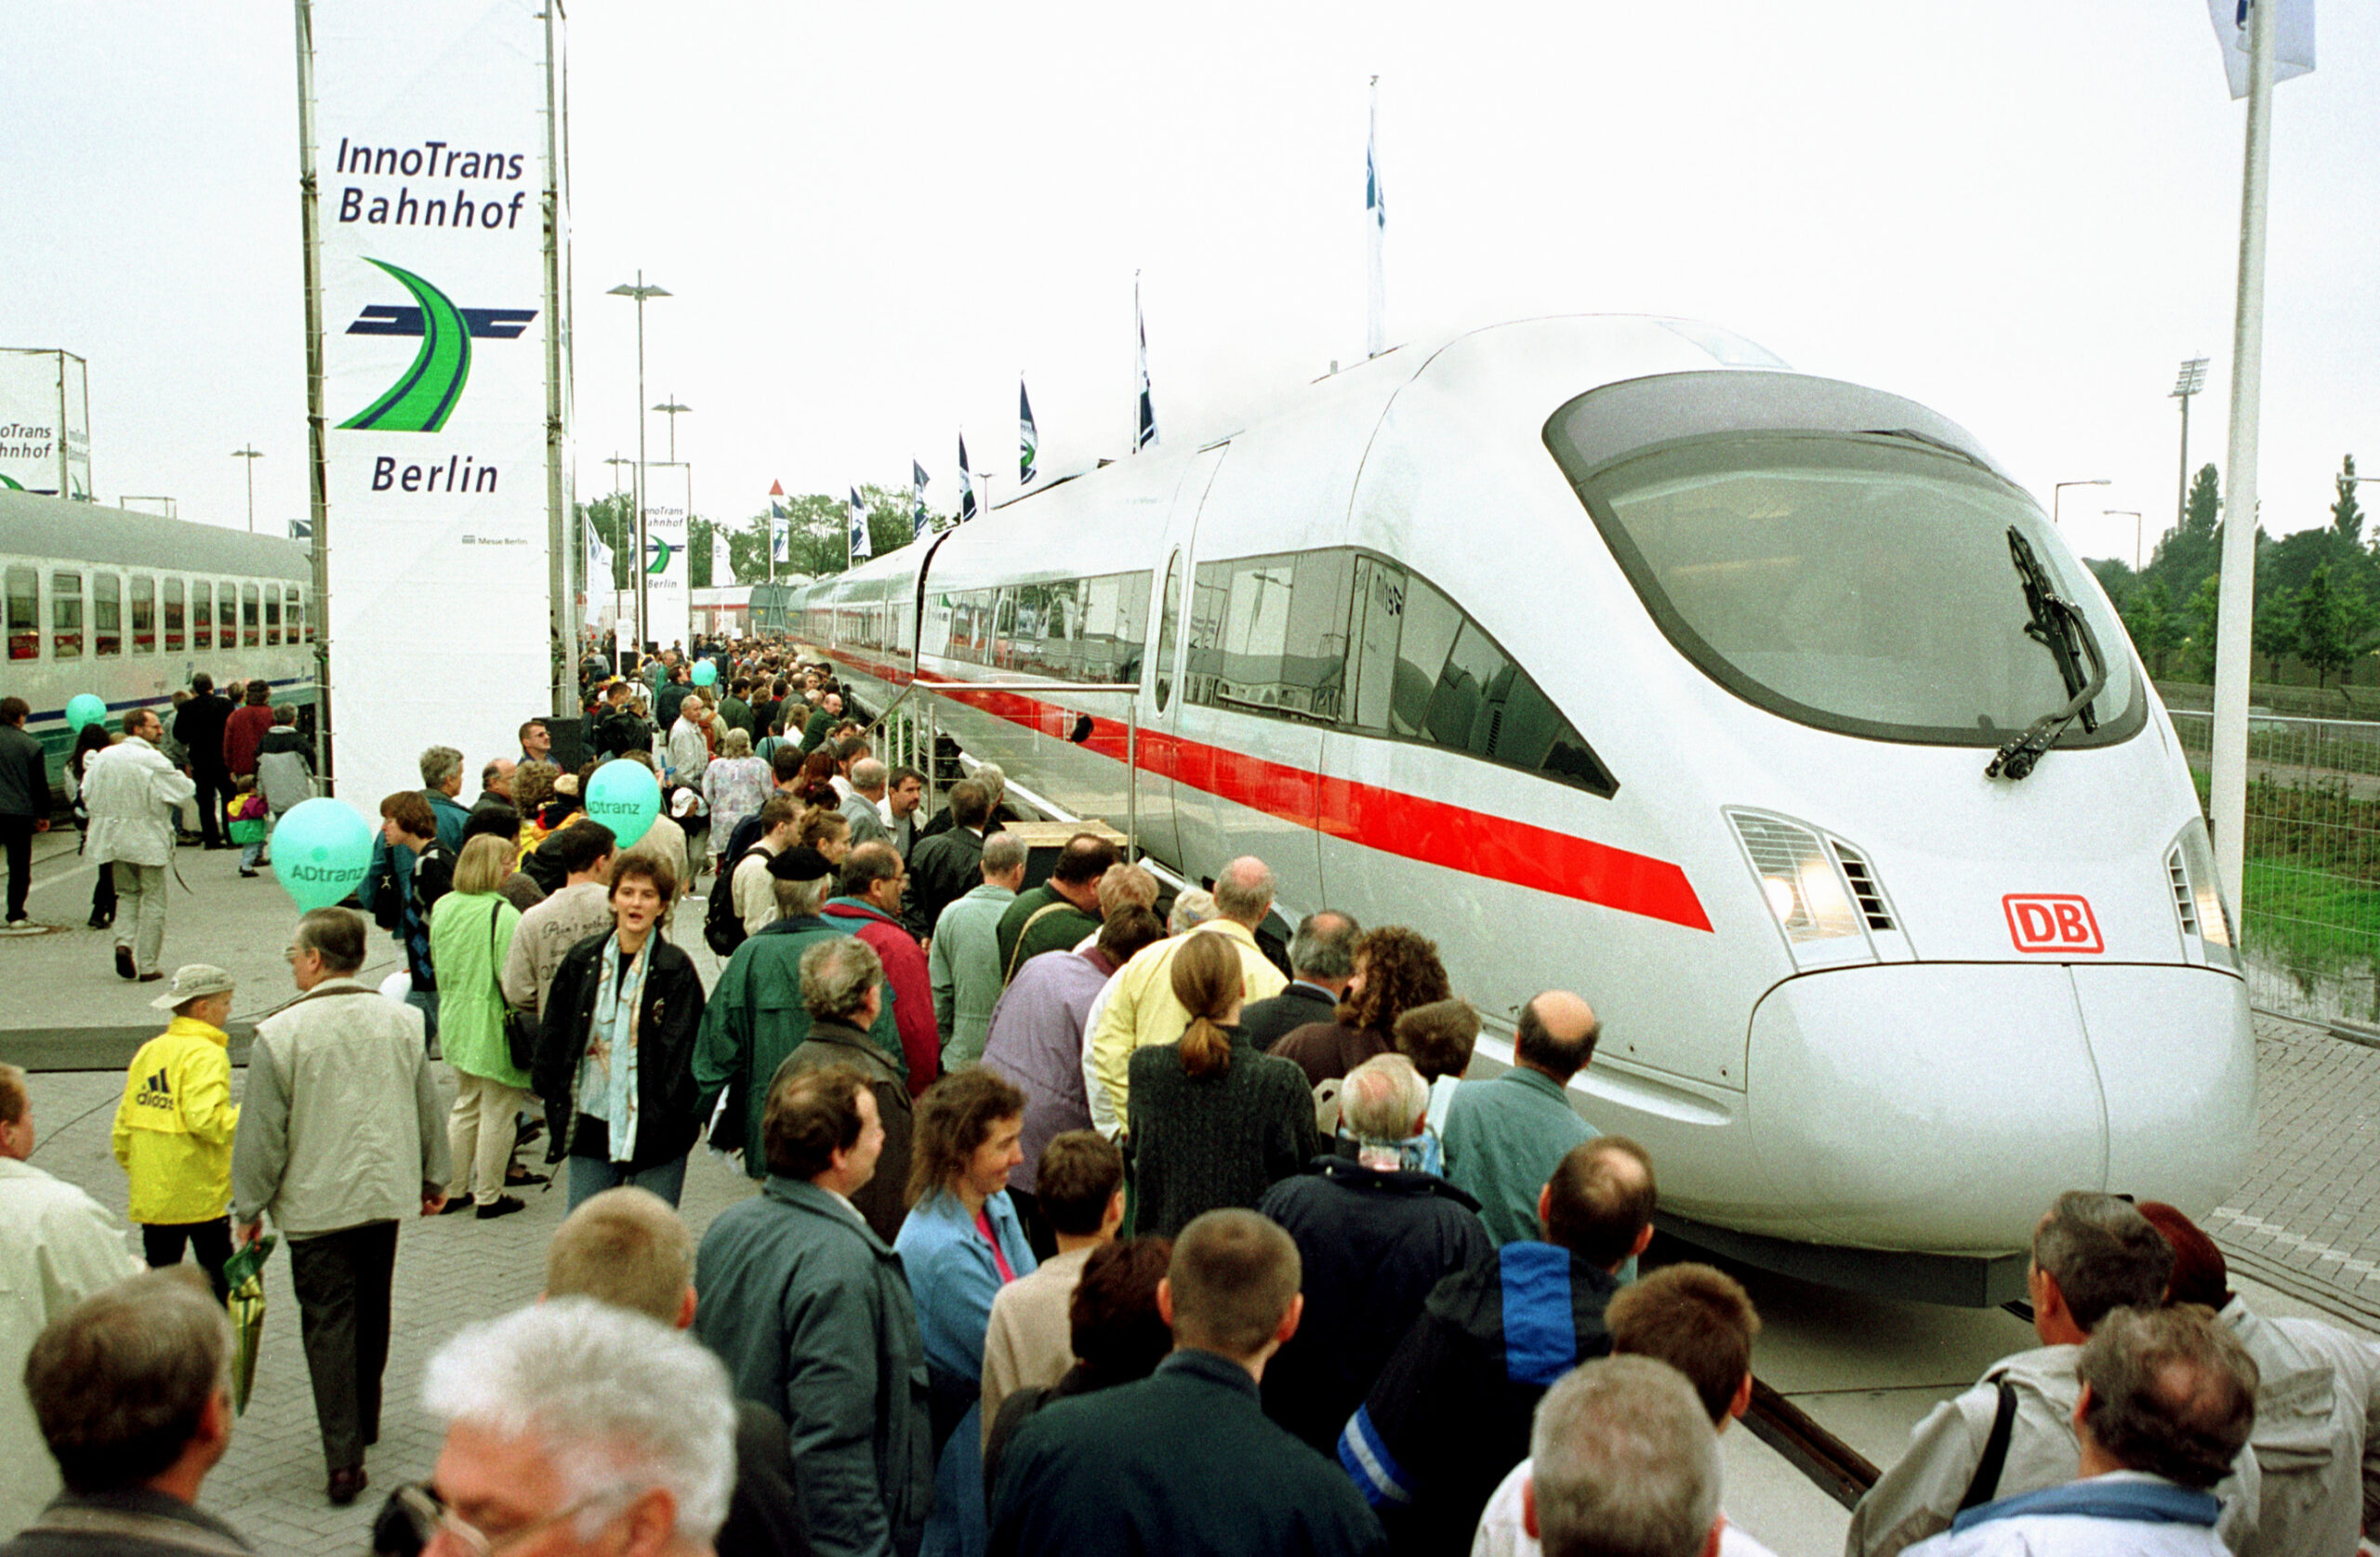 The ICE TD at InnoTrans 2000